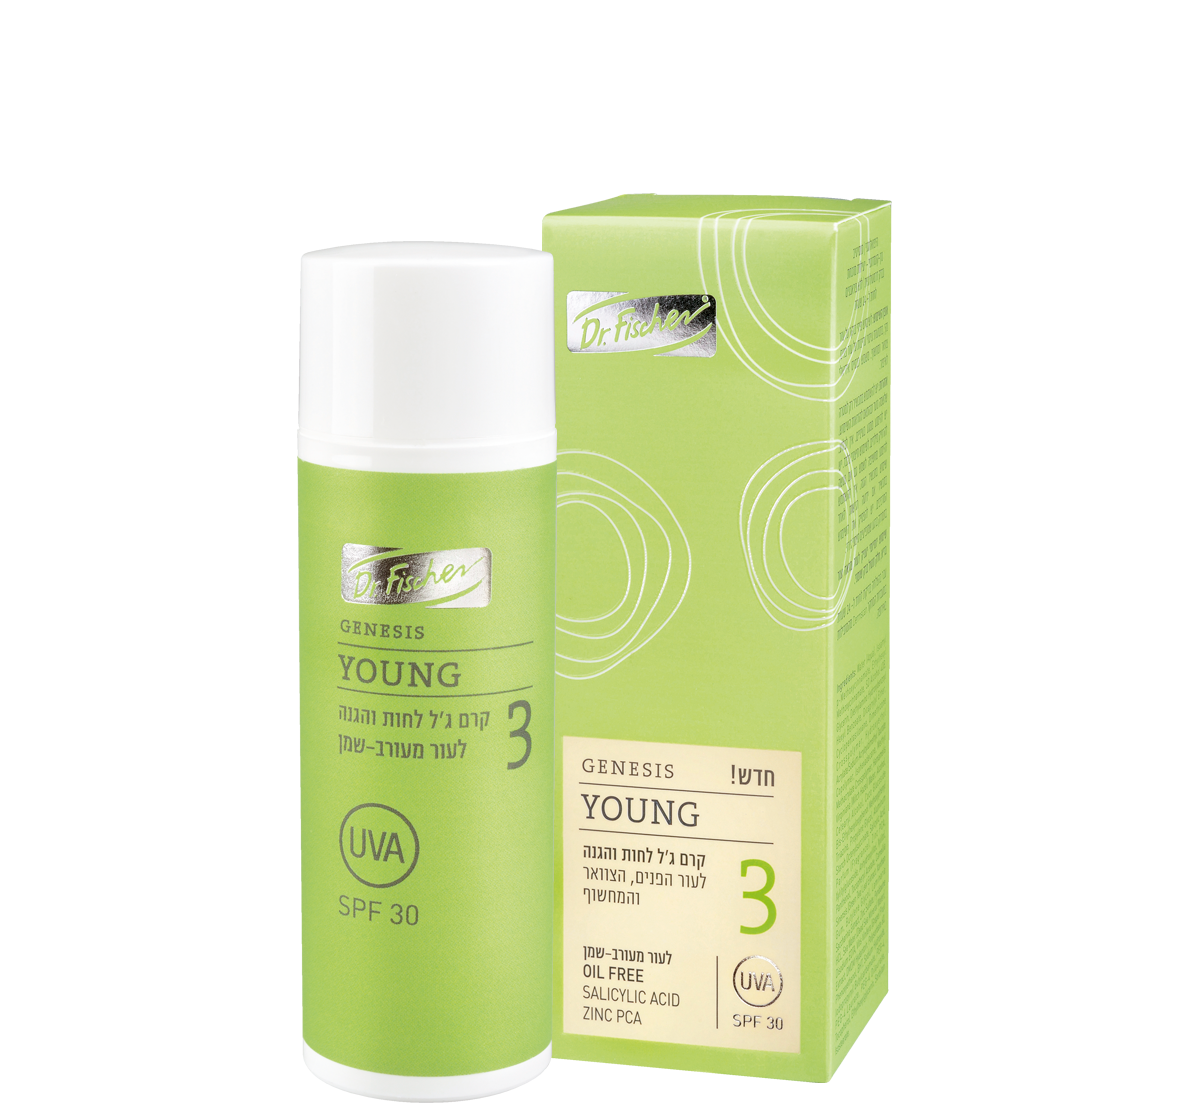 E_young_young_cream-gel_184x1104